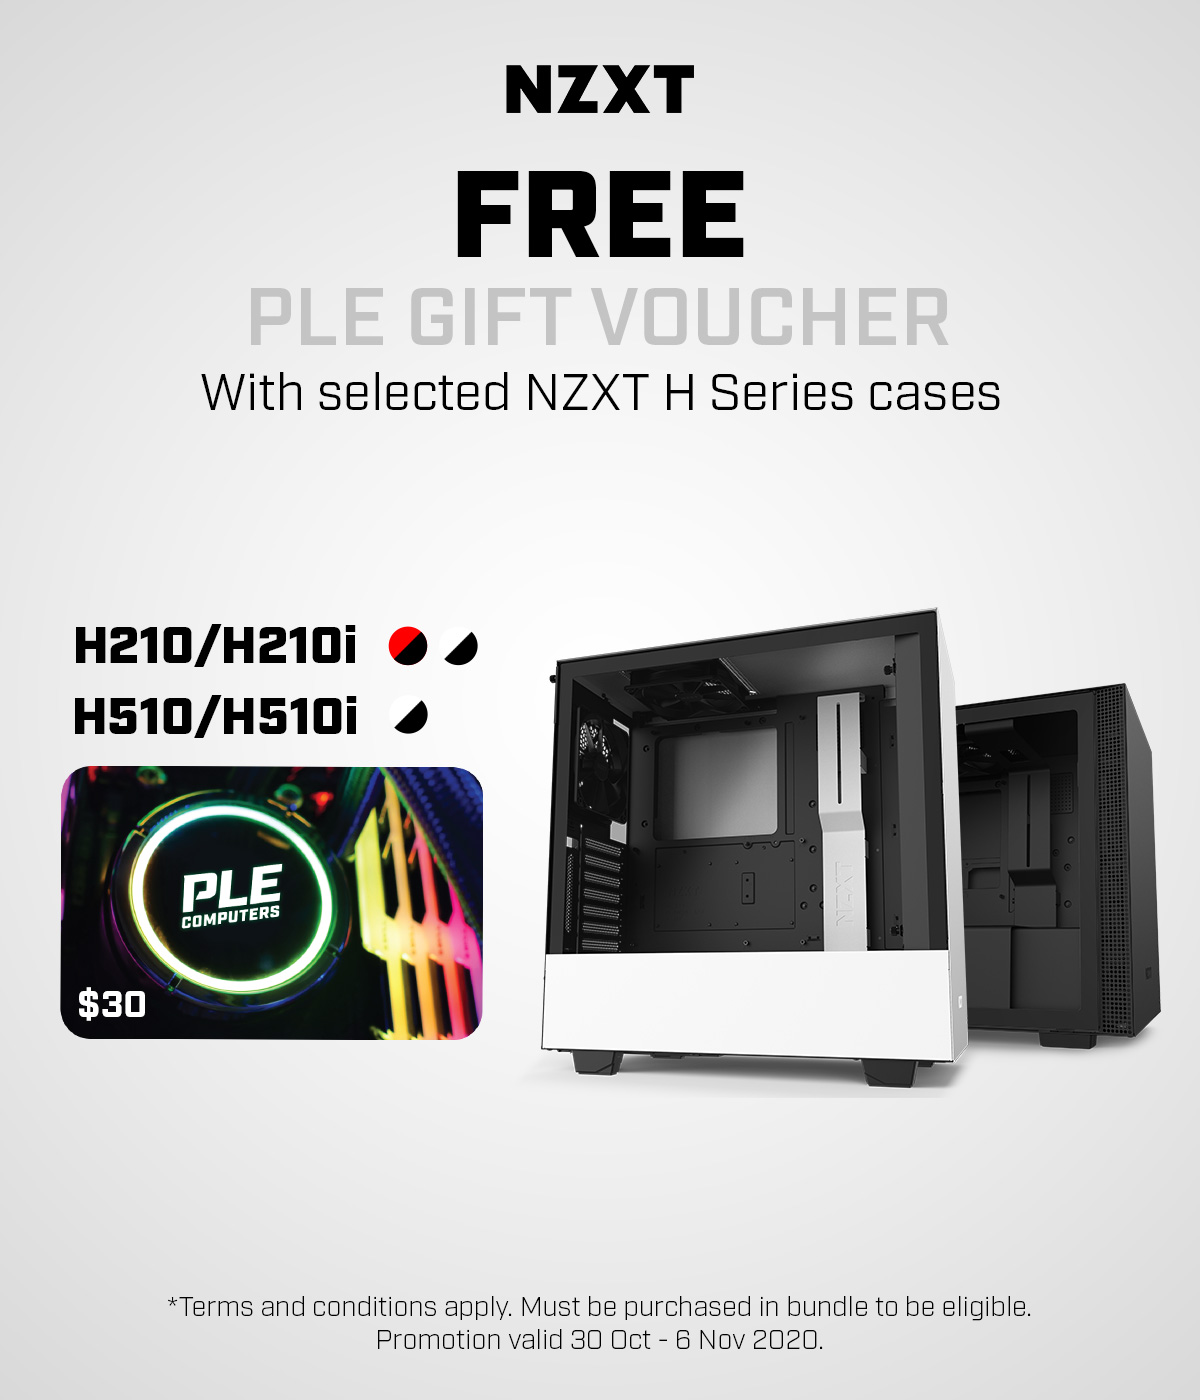 A large marketing image providing additional information about the product NZXT H210 or H510 Selected Case with free $30 PLE Gift Card - Additional alt info not provided